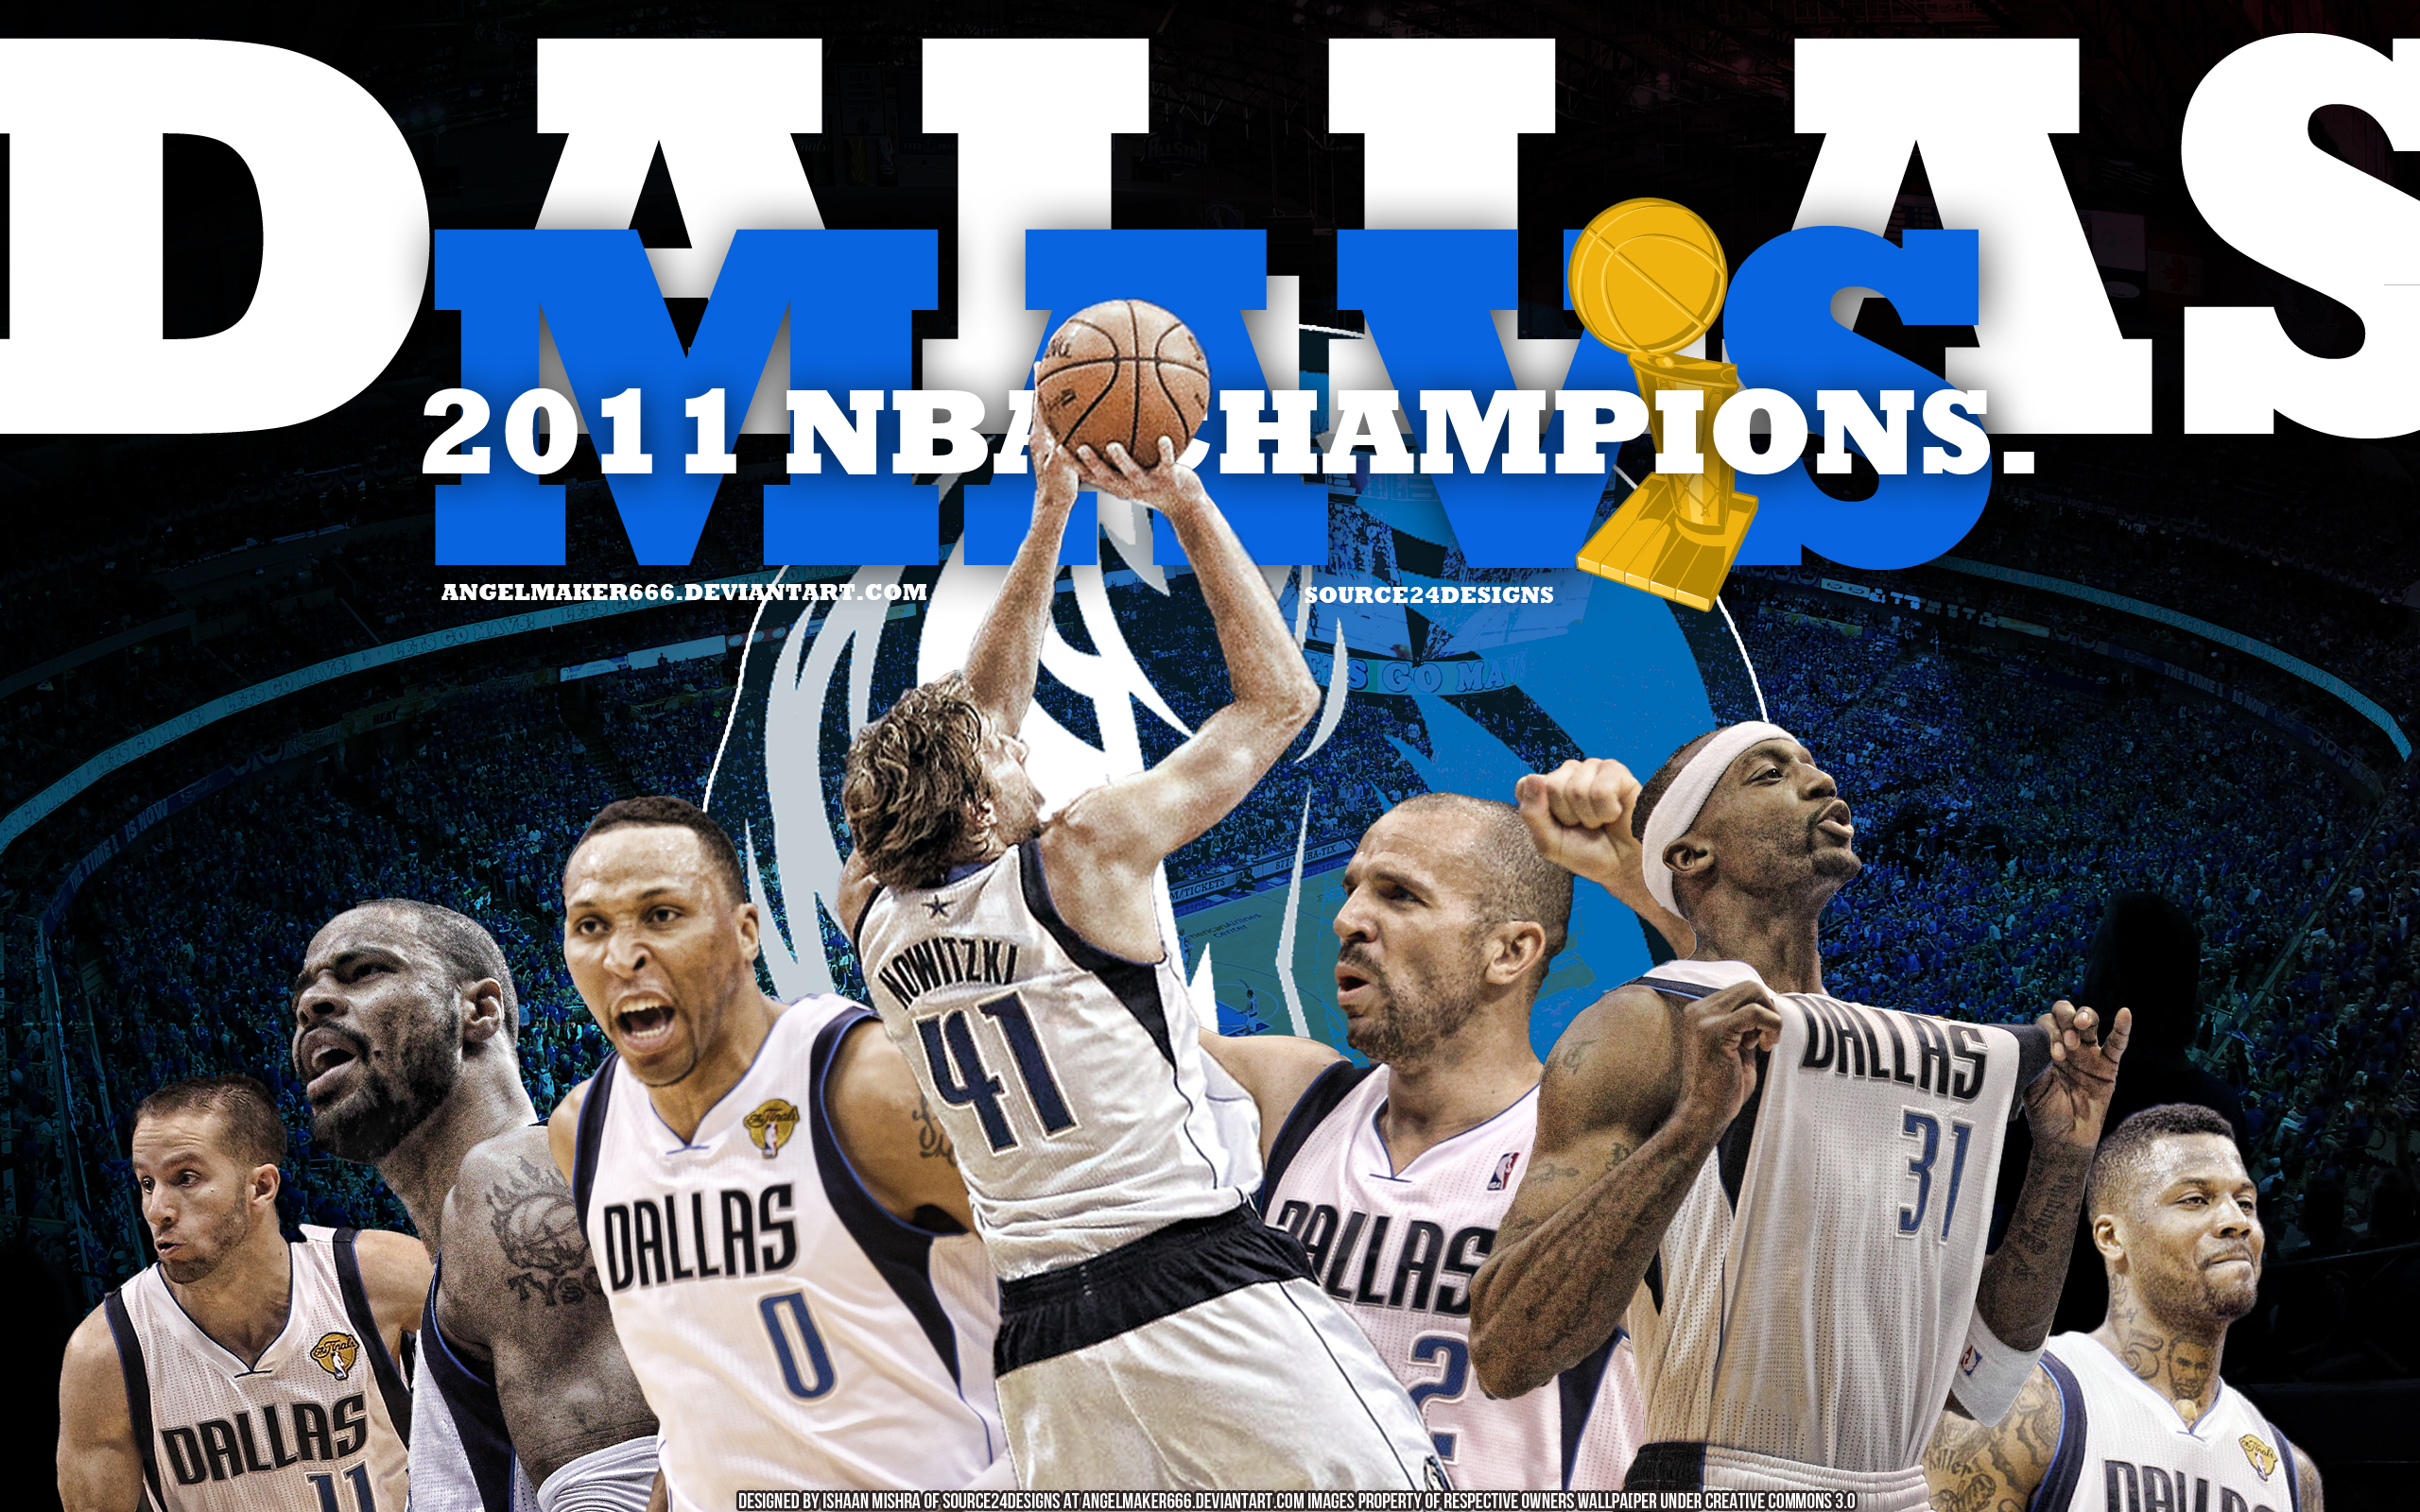 We count down the top 5 teams in the history of the Mavs franchise ... with a timely tip of the c...